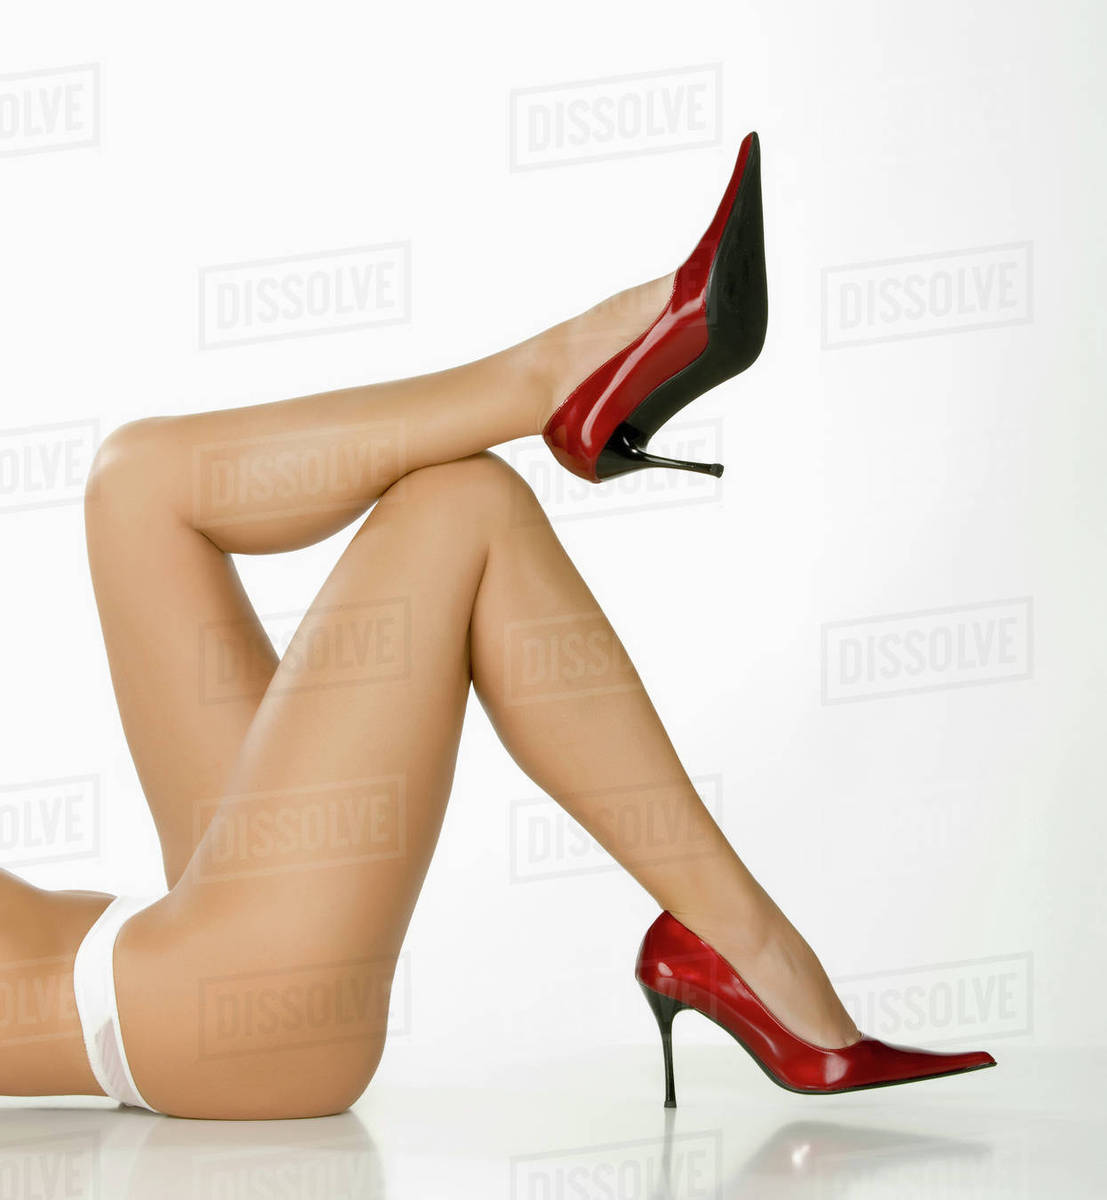 Legs High Of Heels Laying Floor Photo Wearing Caucasian Woman Stock On UMVGLqSzp